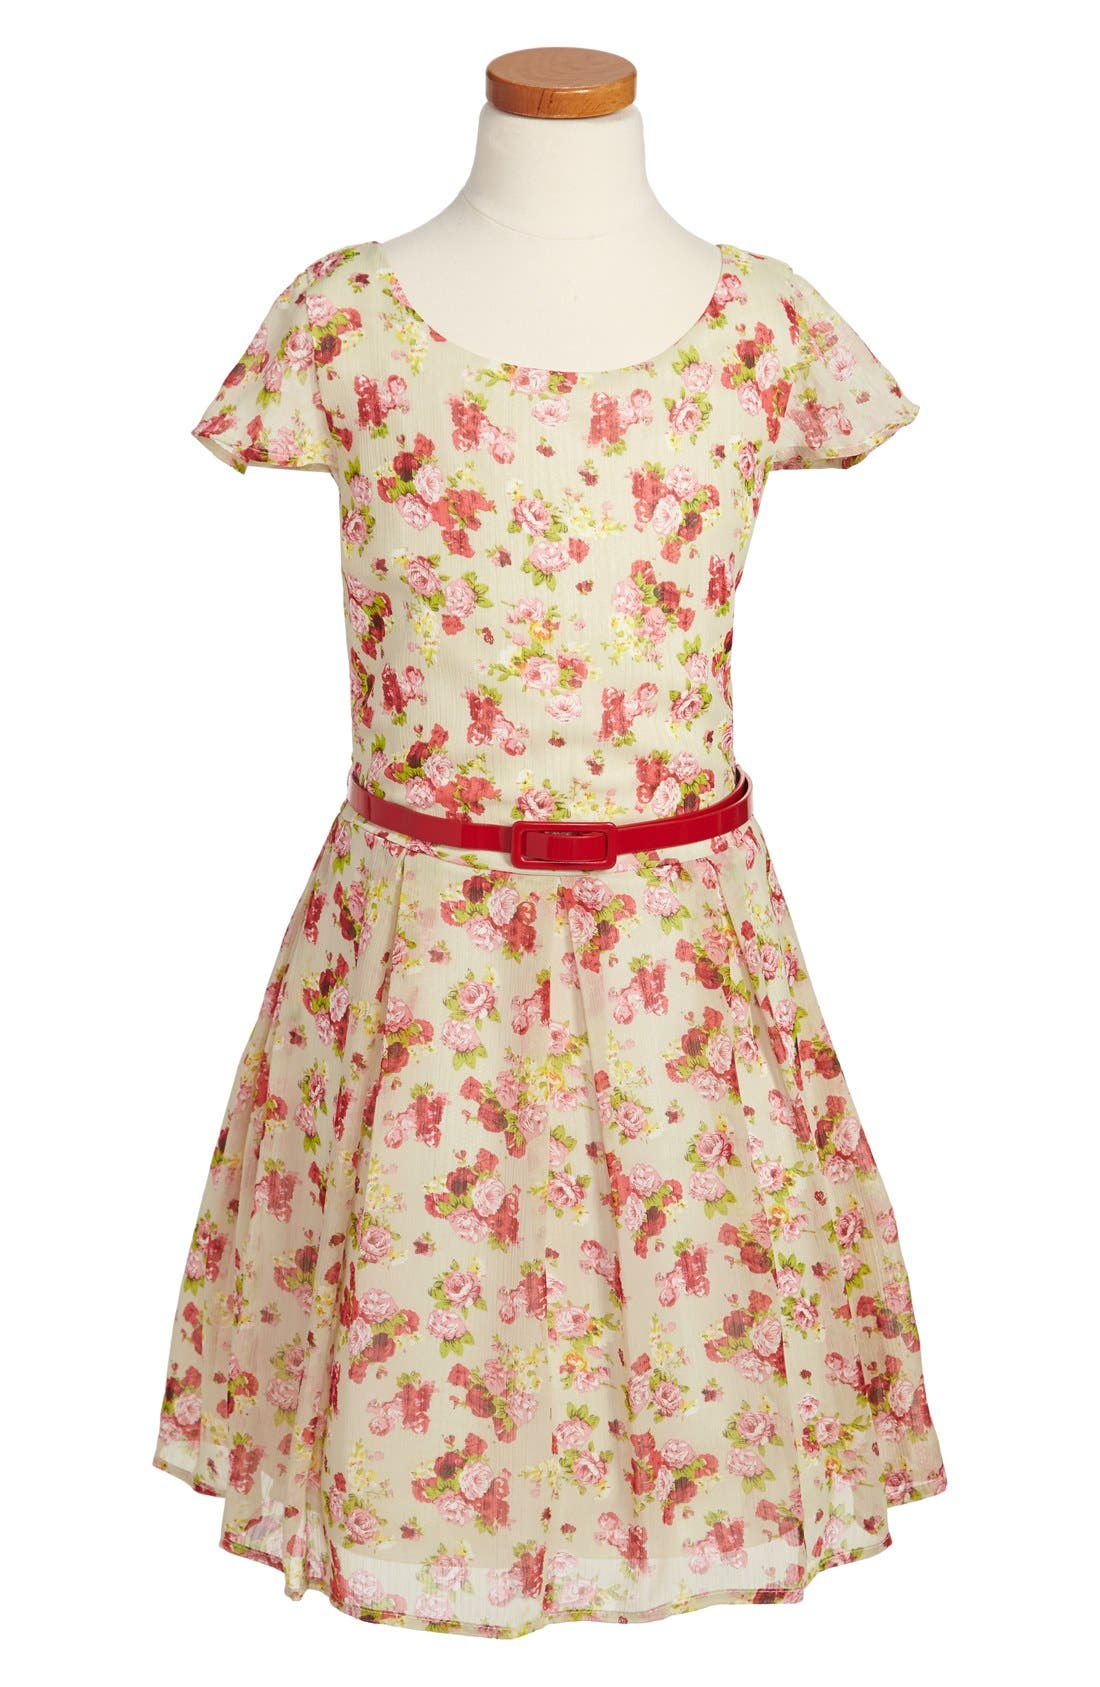 Alternate Image 1 Selected - Un Deux Trois Chiffon Dress (Big Girls)